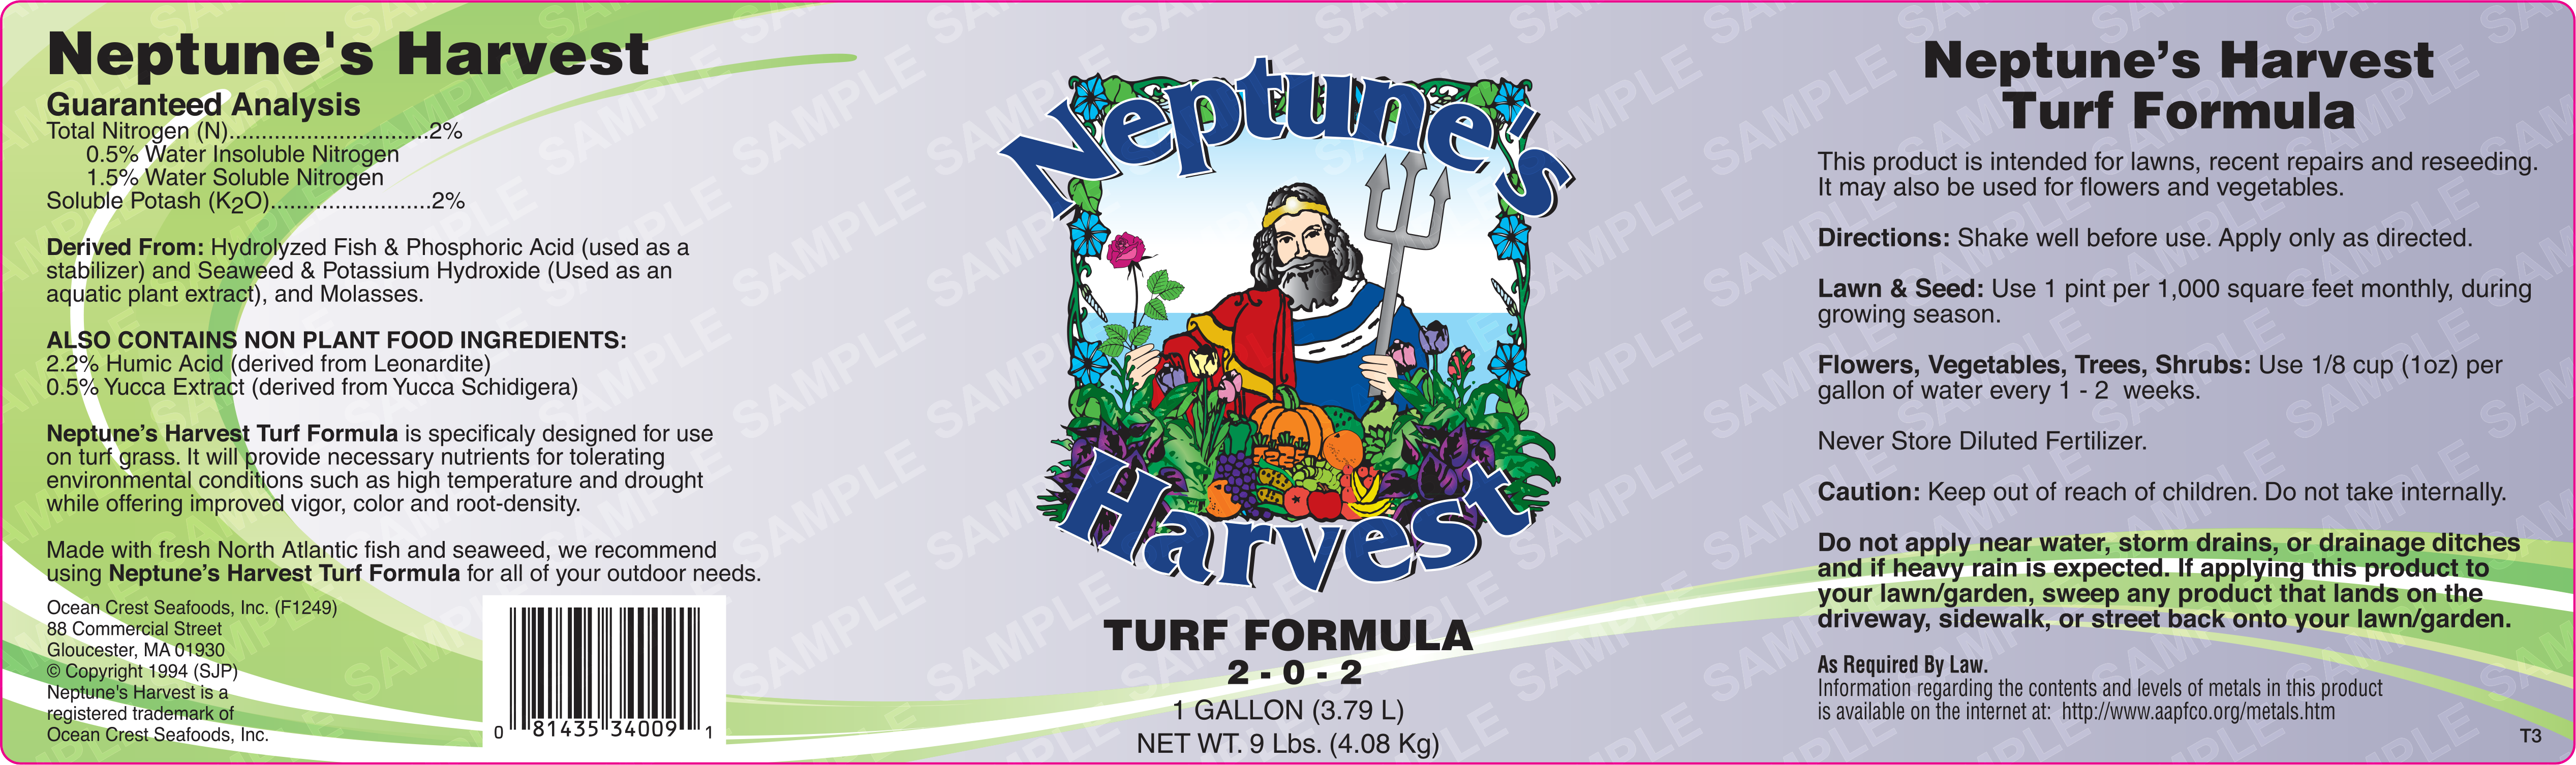 Neptune's Harvest Turf Formula Product Label